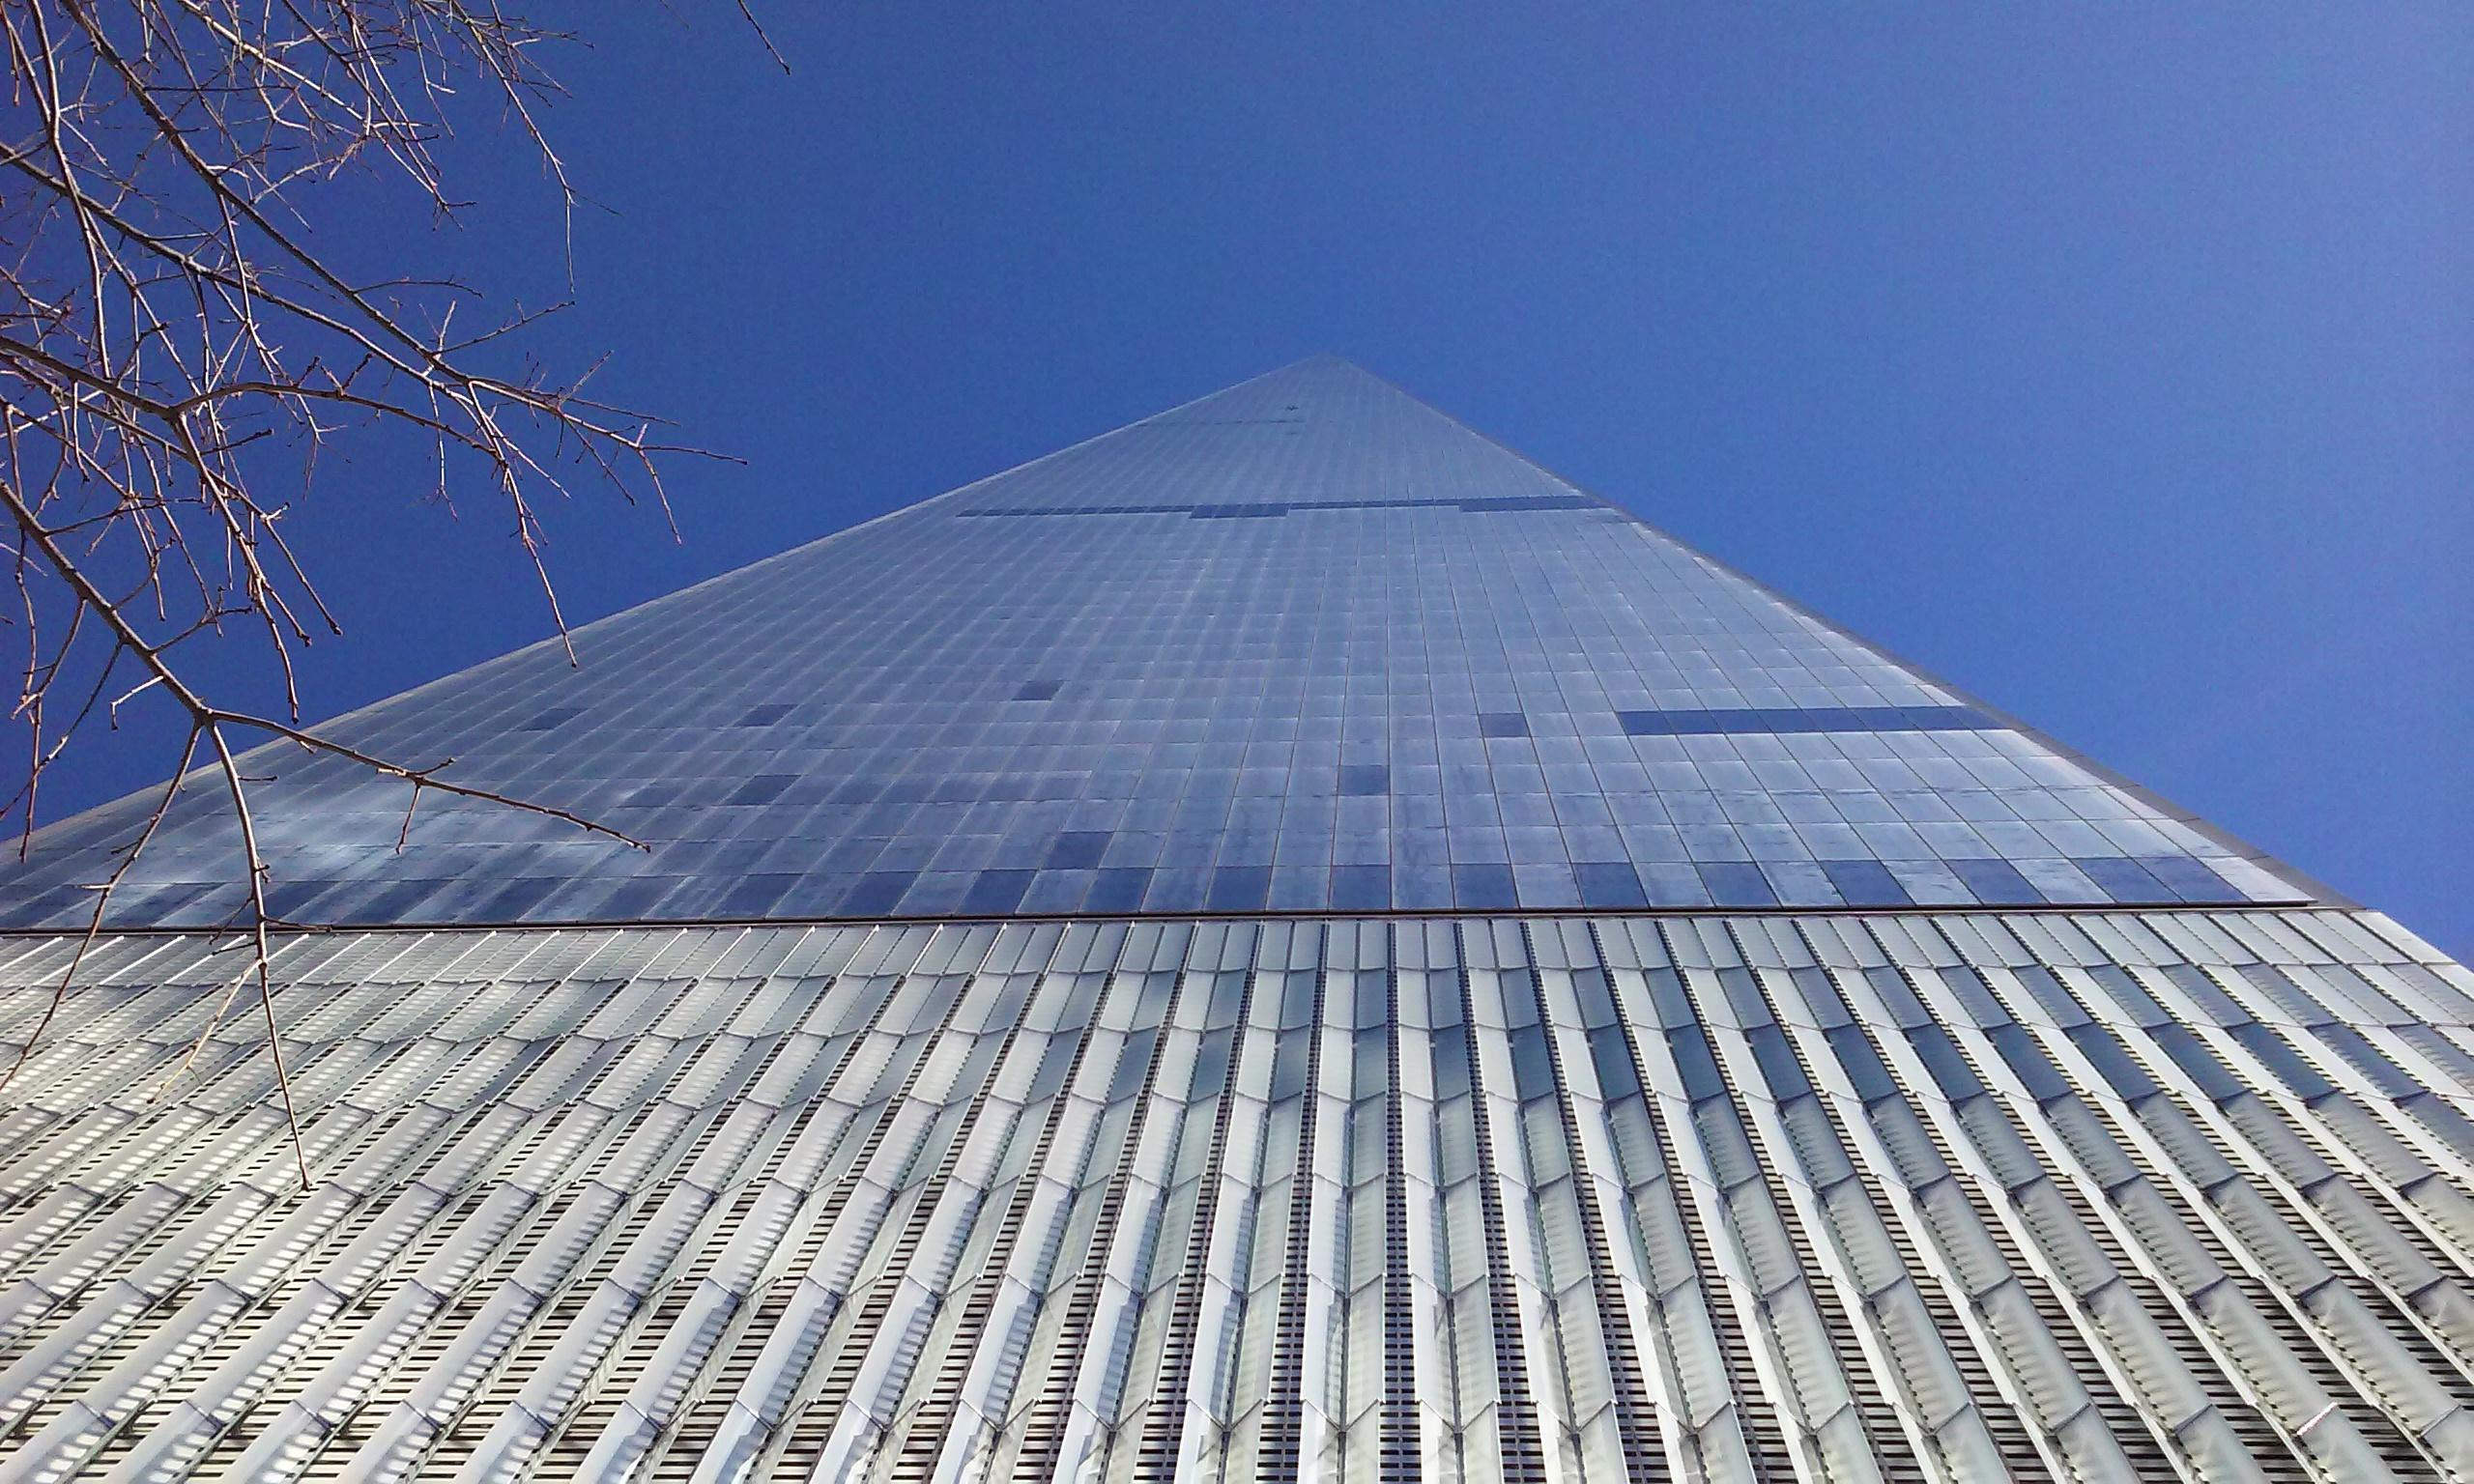 World Trade Center. Looking up the building tapers to a sharp point.